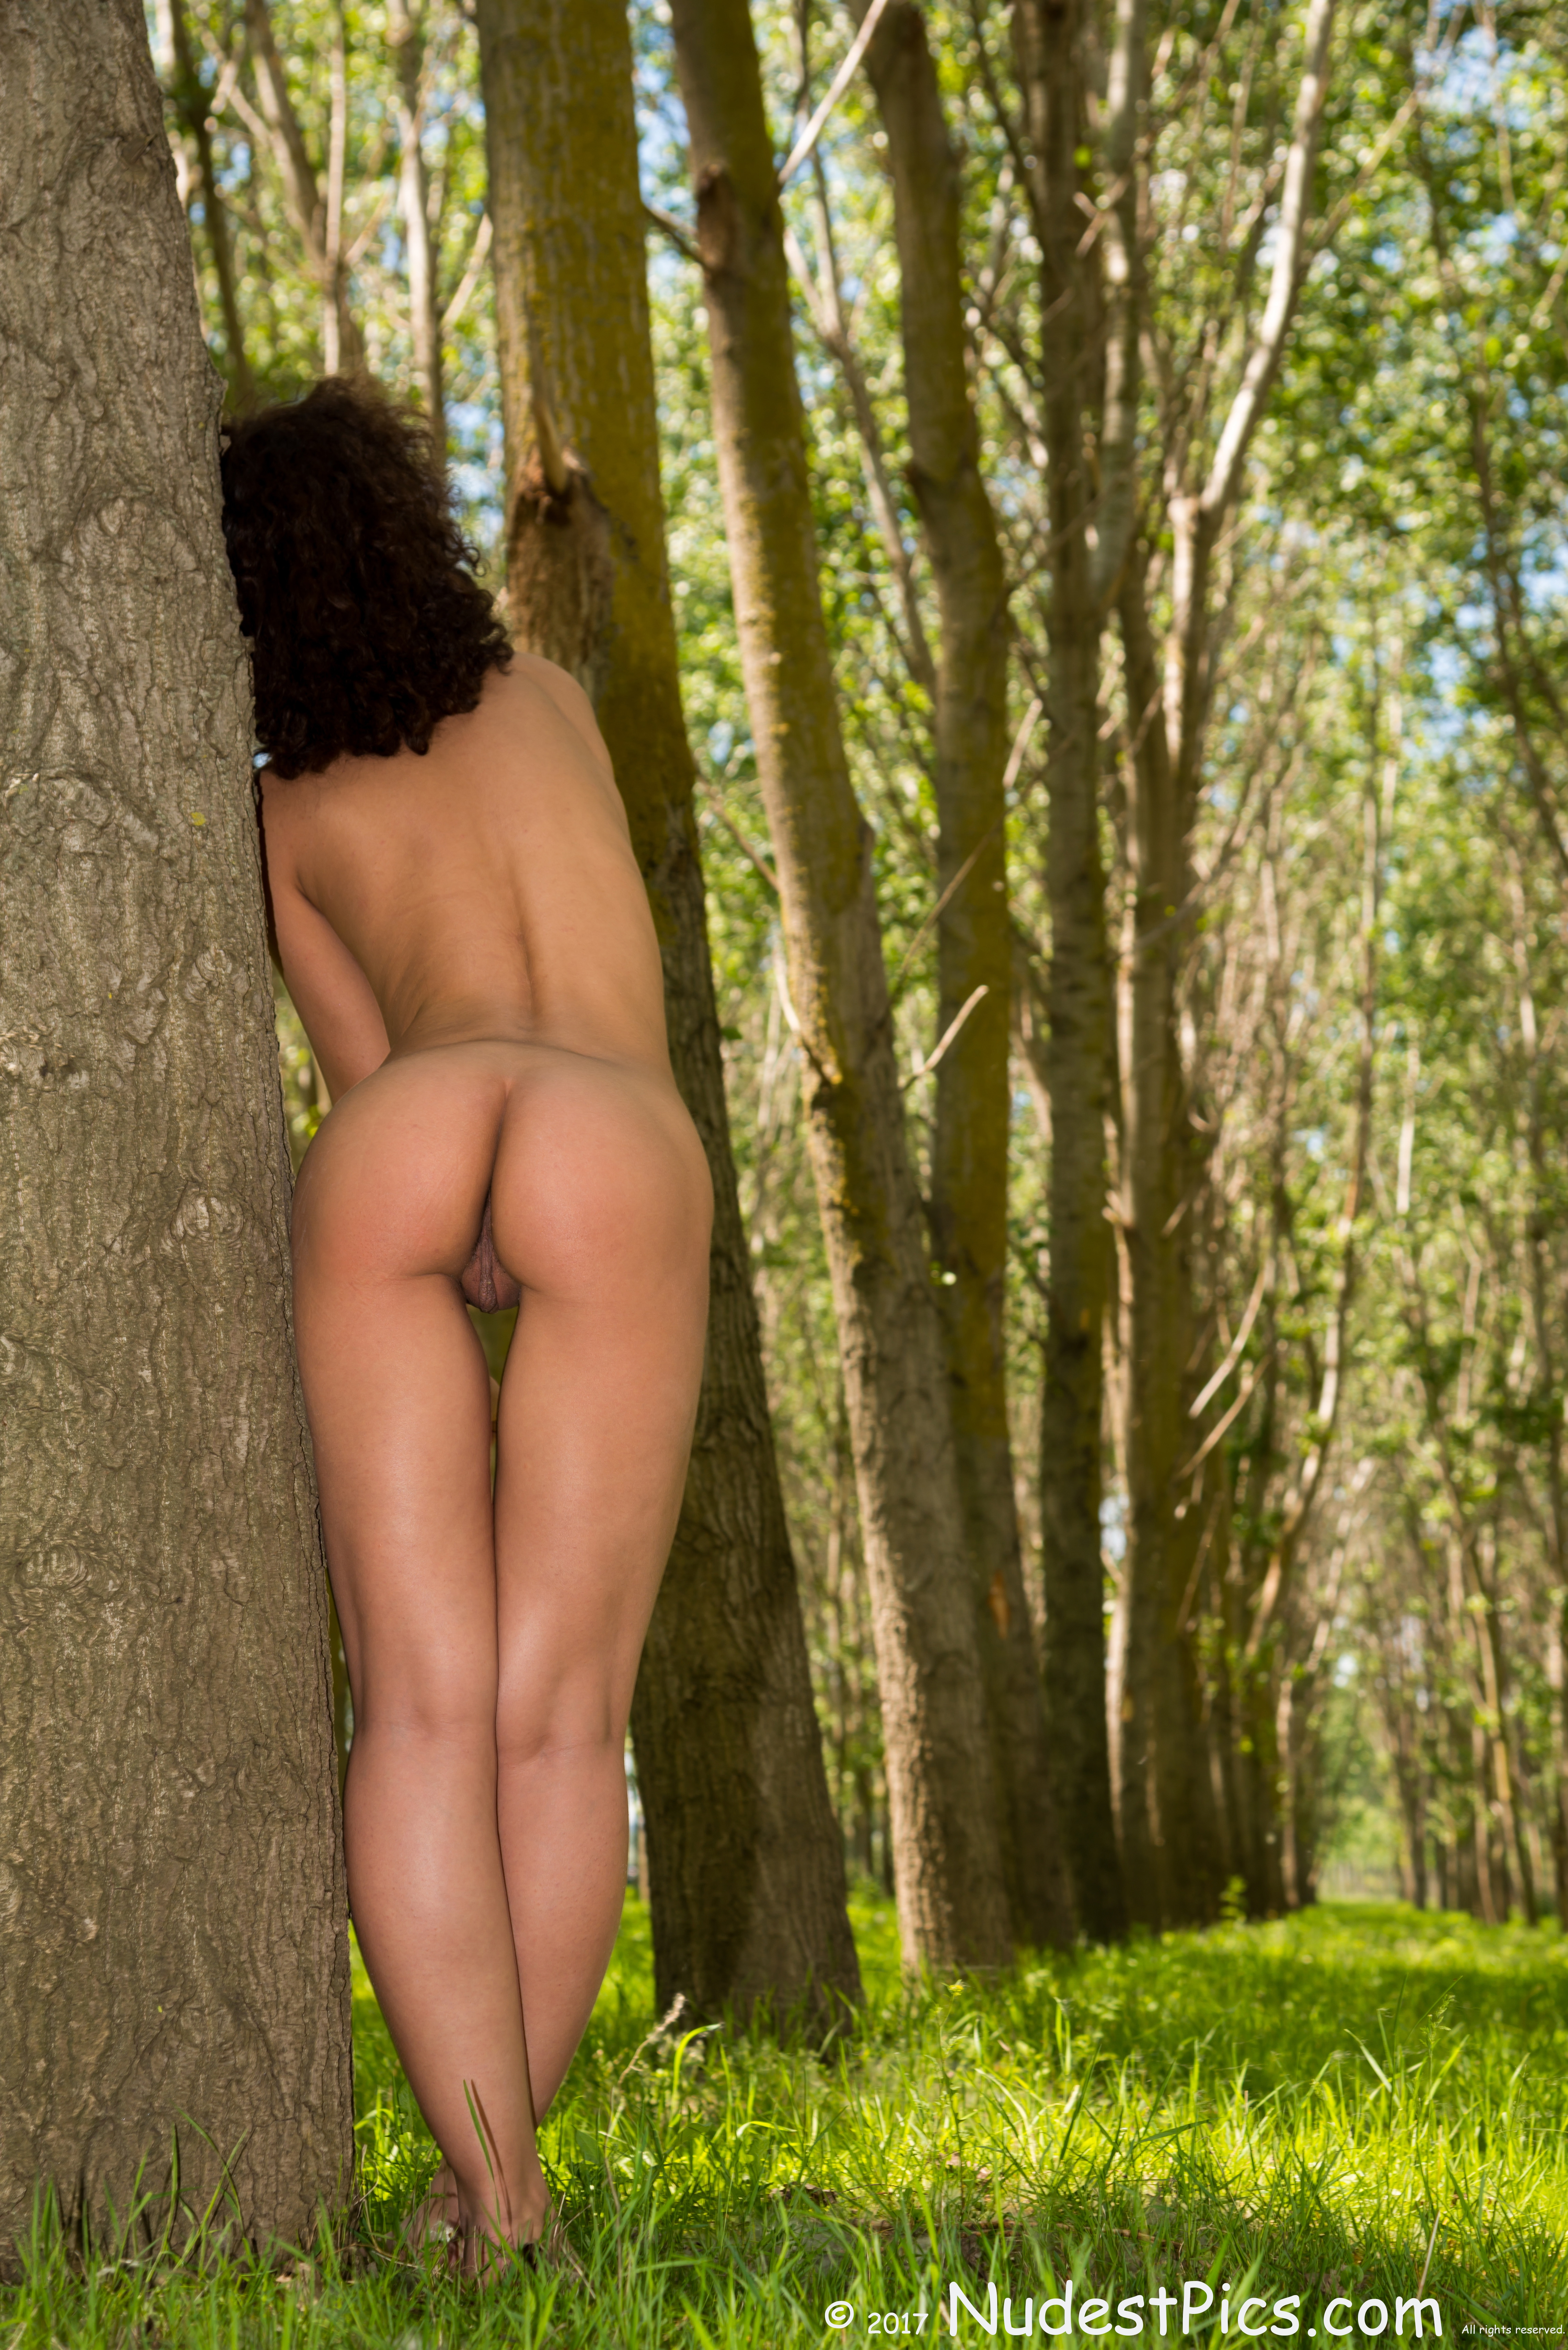 Nudist Gal's Behind in the Tall Woods HD